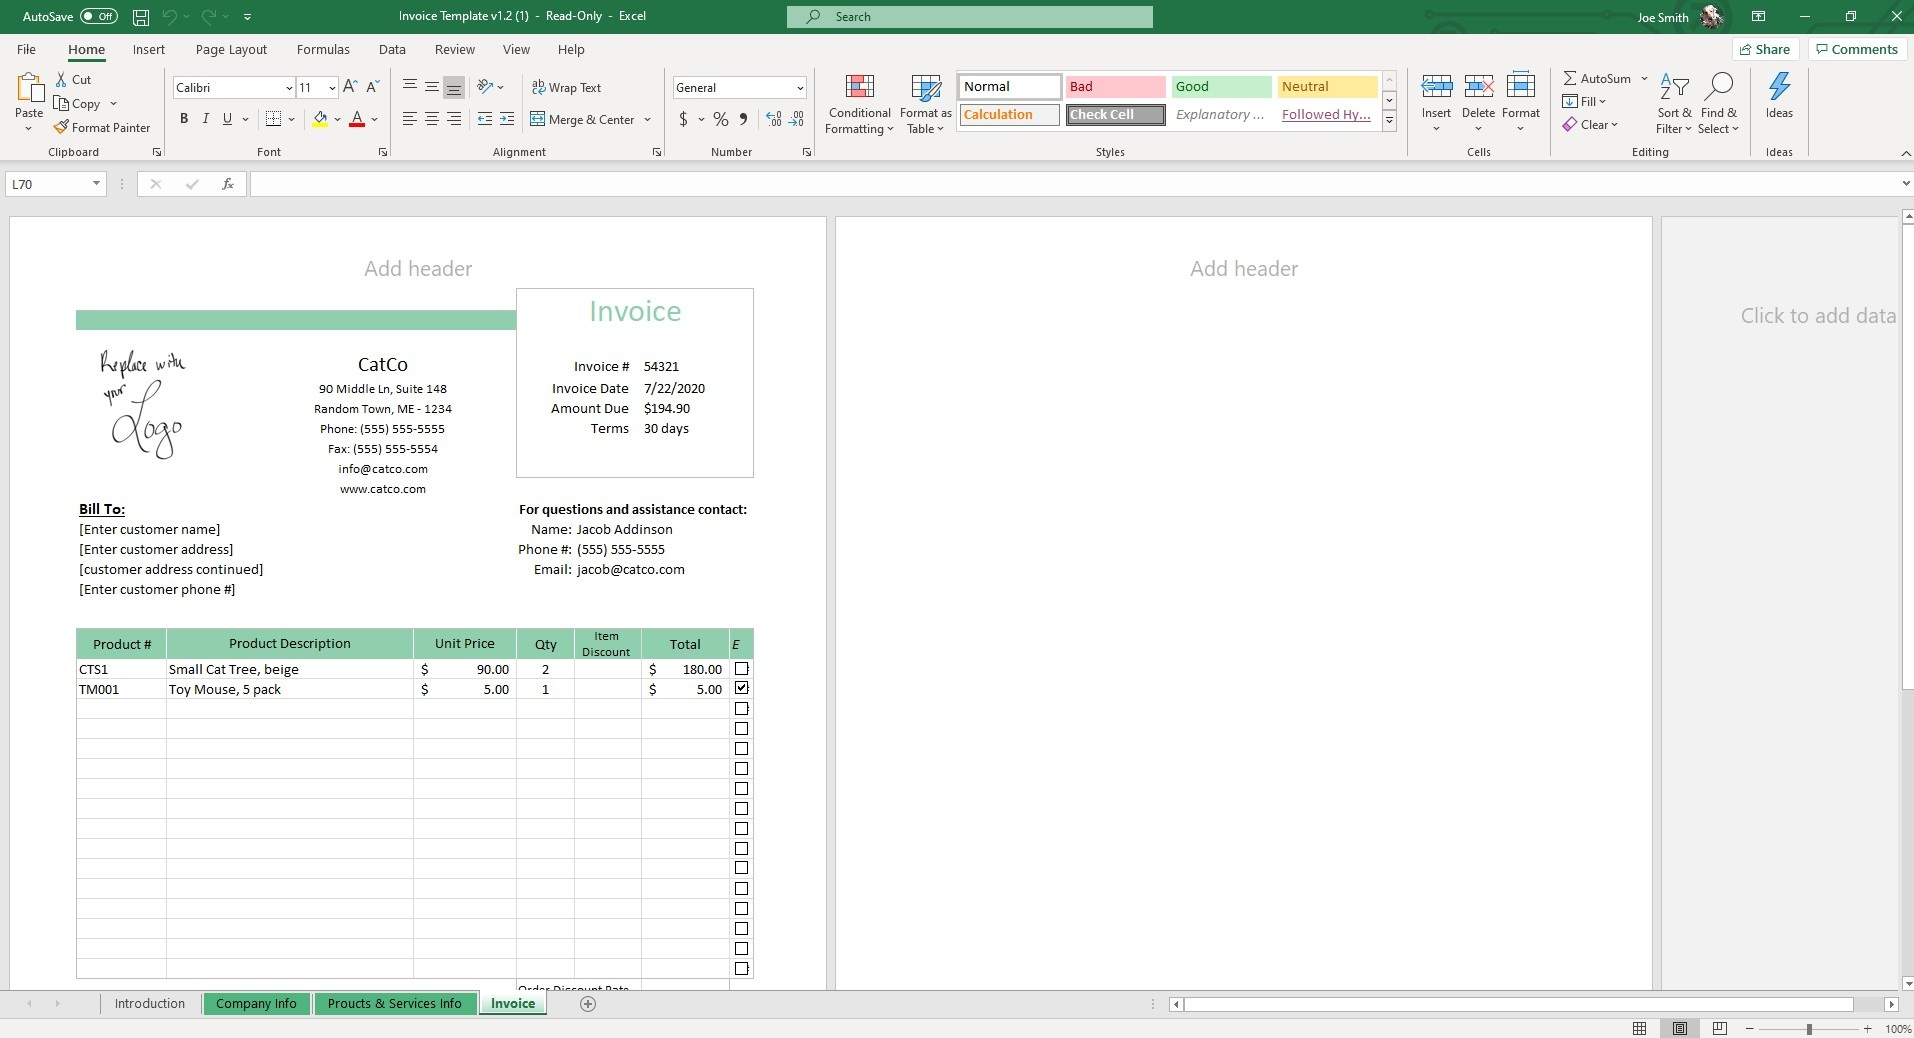 In our Invoice Excel Template, your invoice will be standard and auto populate based on your company details.